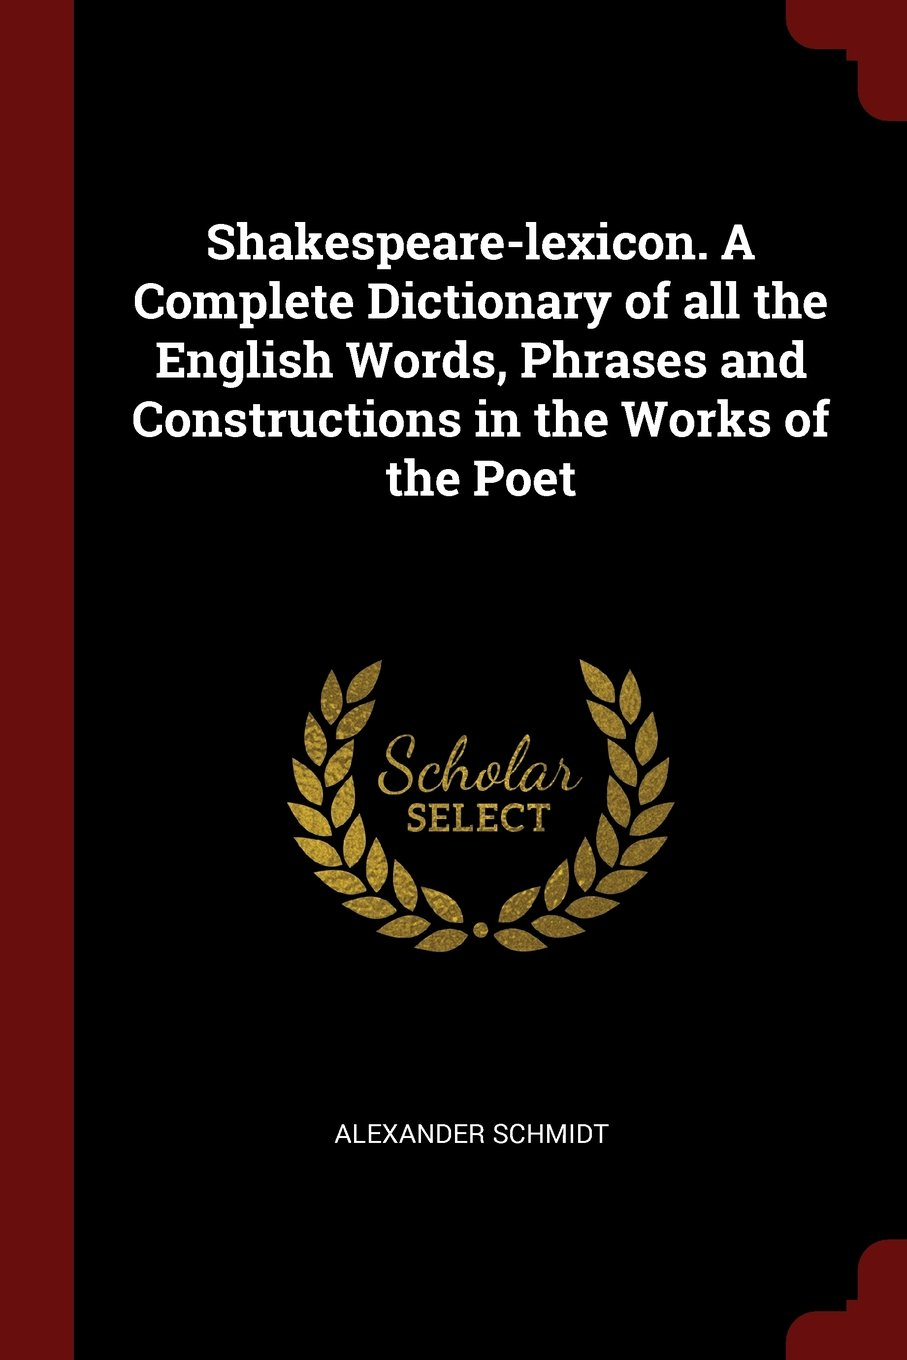 Read Online Shakespeare-lexicon. A Complete Dictionary of all the English Words, Phrases and Constructions in the Works of the Poet pdf epub